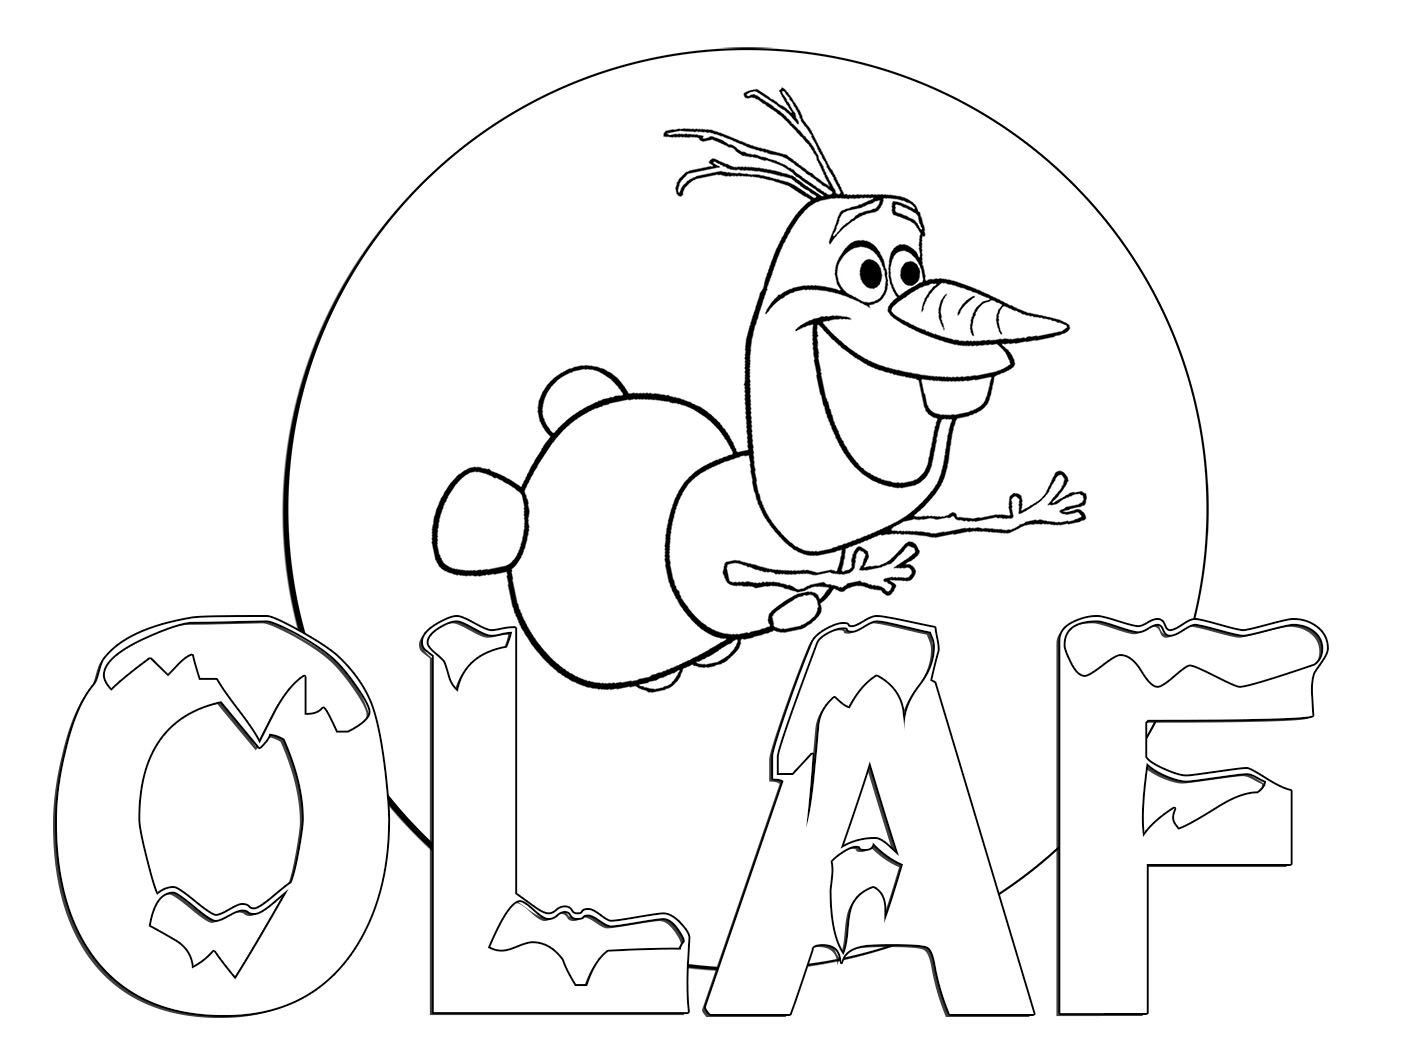 Downloads The Latest Coloring Pages Disney Frozen Worksheets Pictures And Images For Free